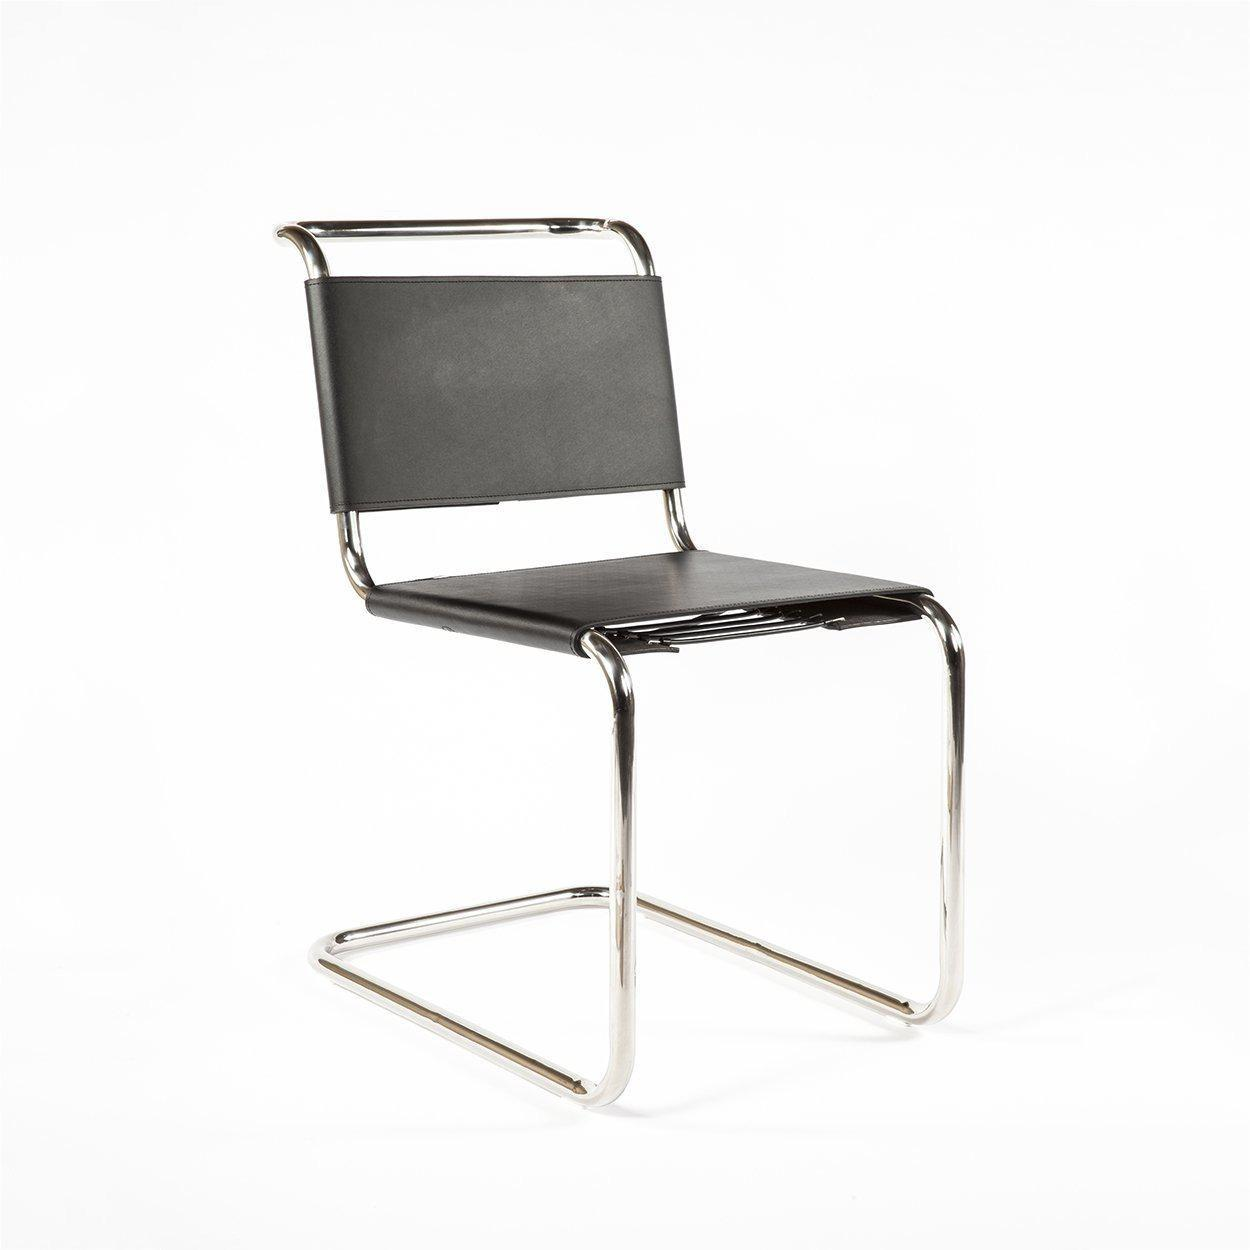 [FEC6119BLK] The El Torro Chair